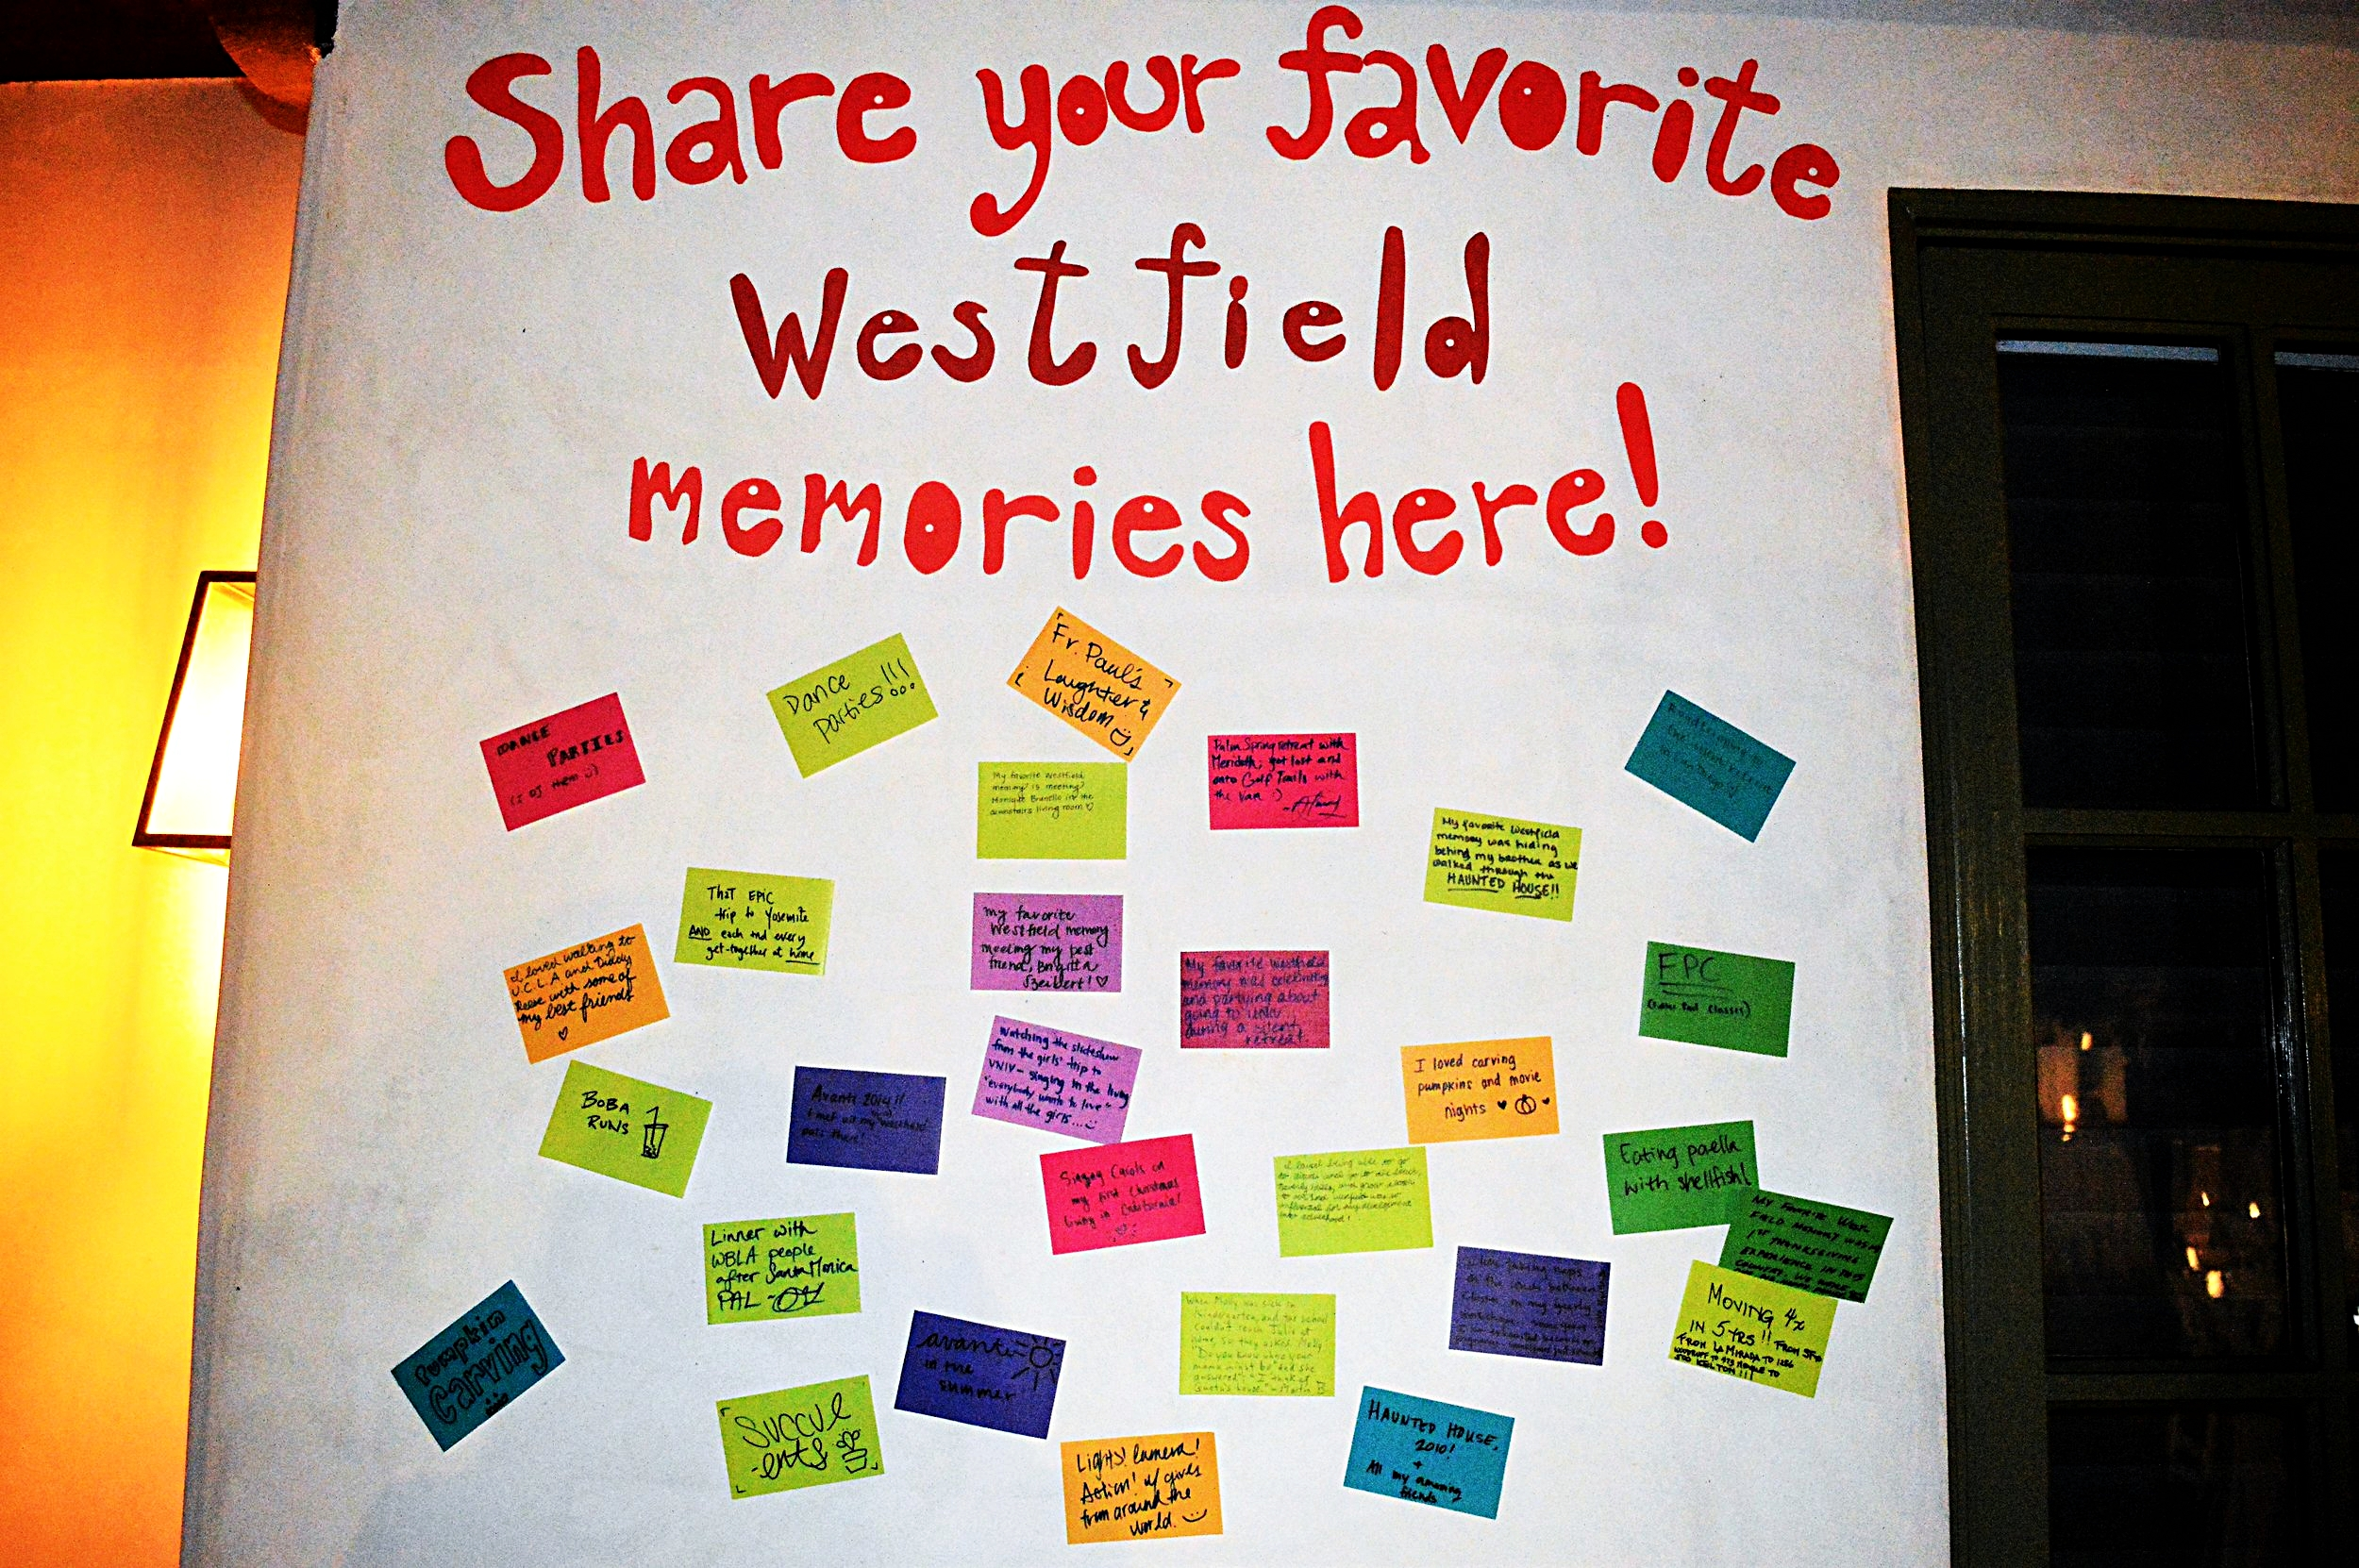 The Westfield Wall of Memories